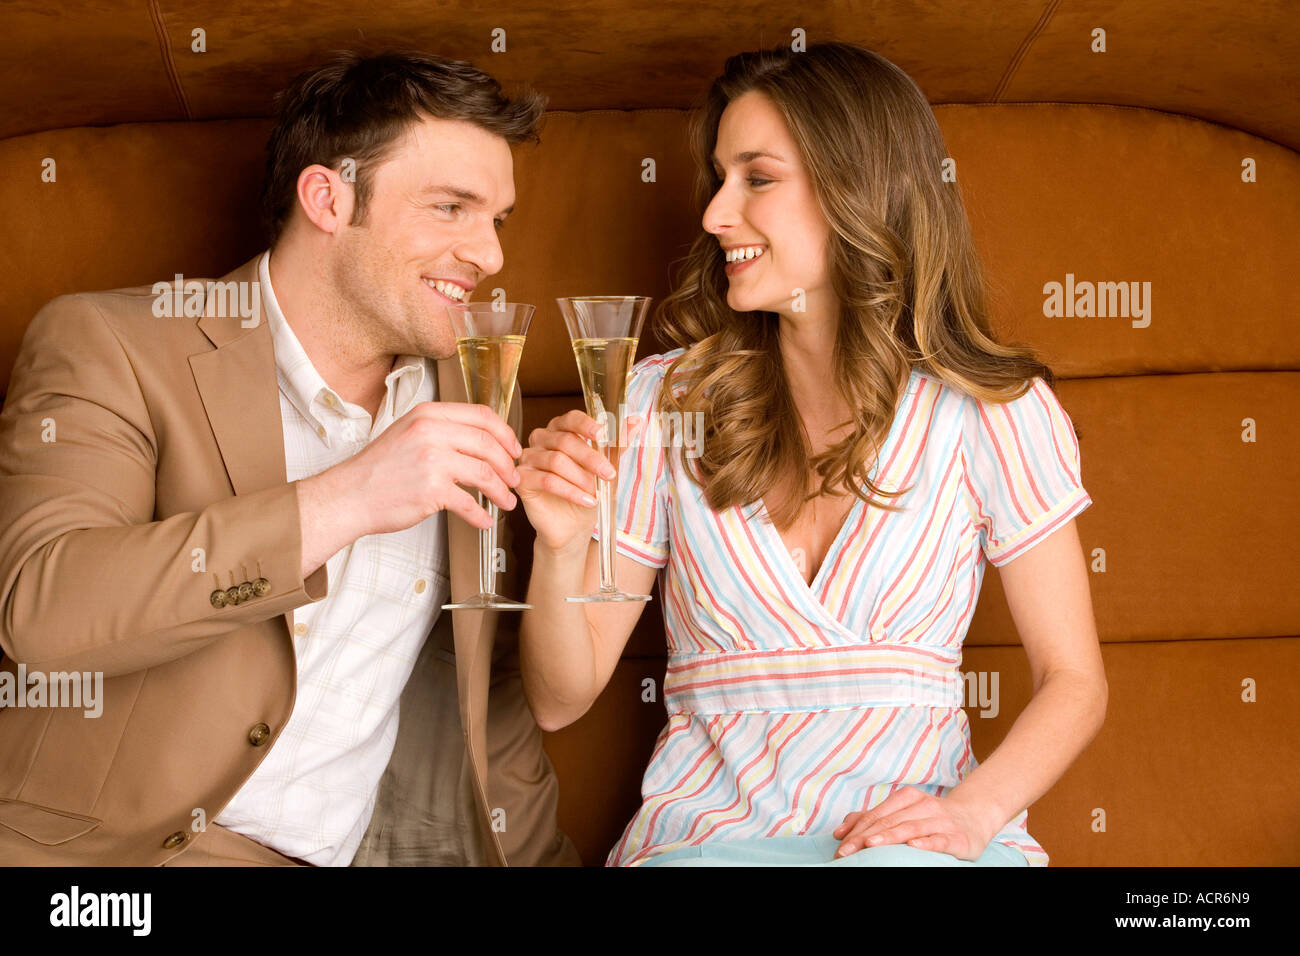 Young couple on sofa holding champagne glasses, smiling - Stock Image